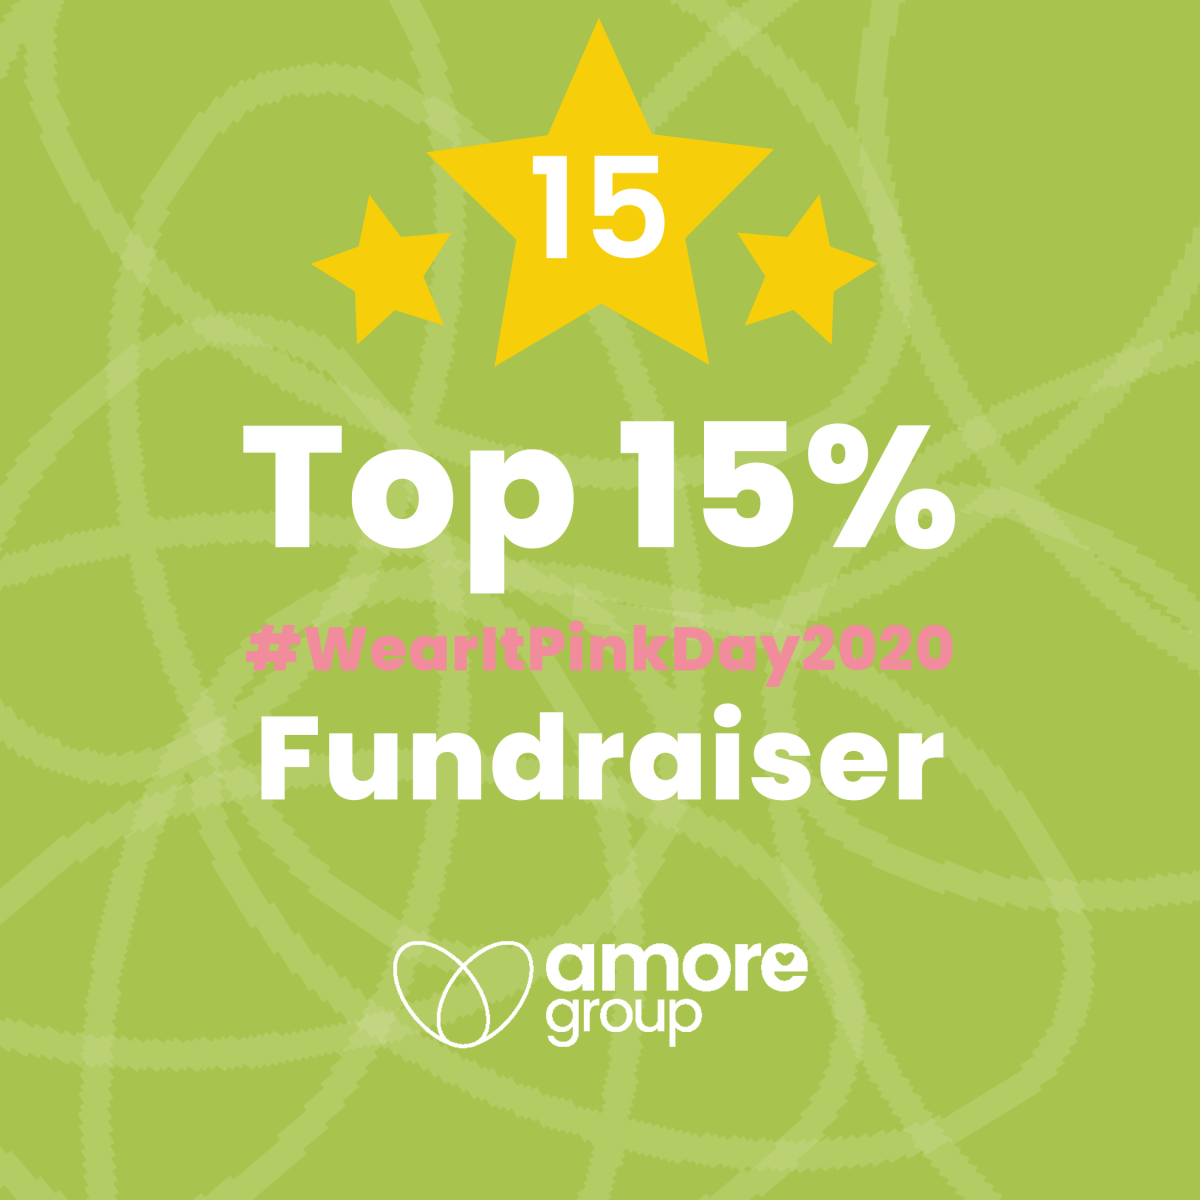 Ranked in the top 15% of fundraisers for wearing pink!